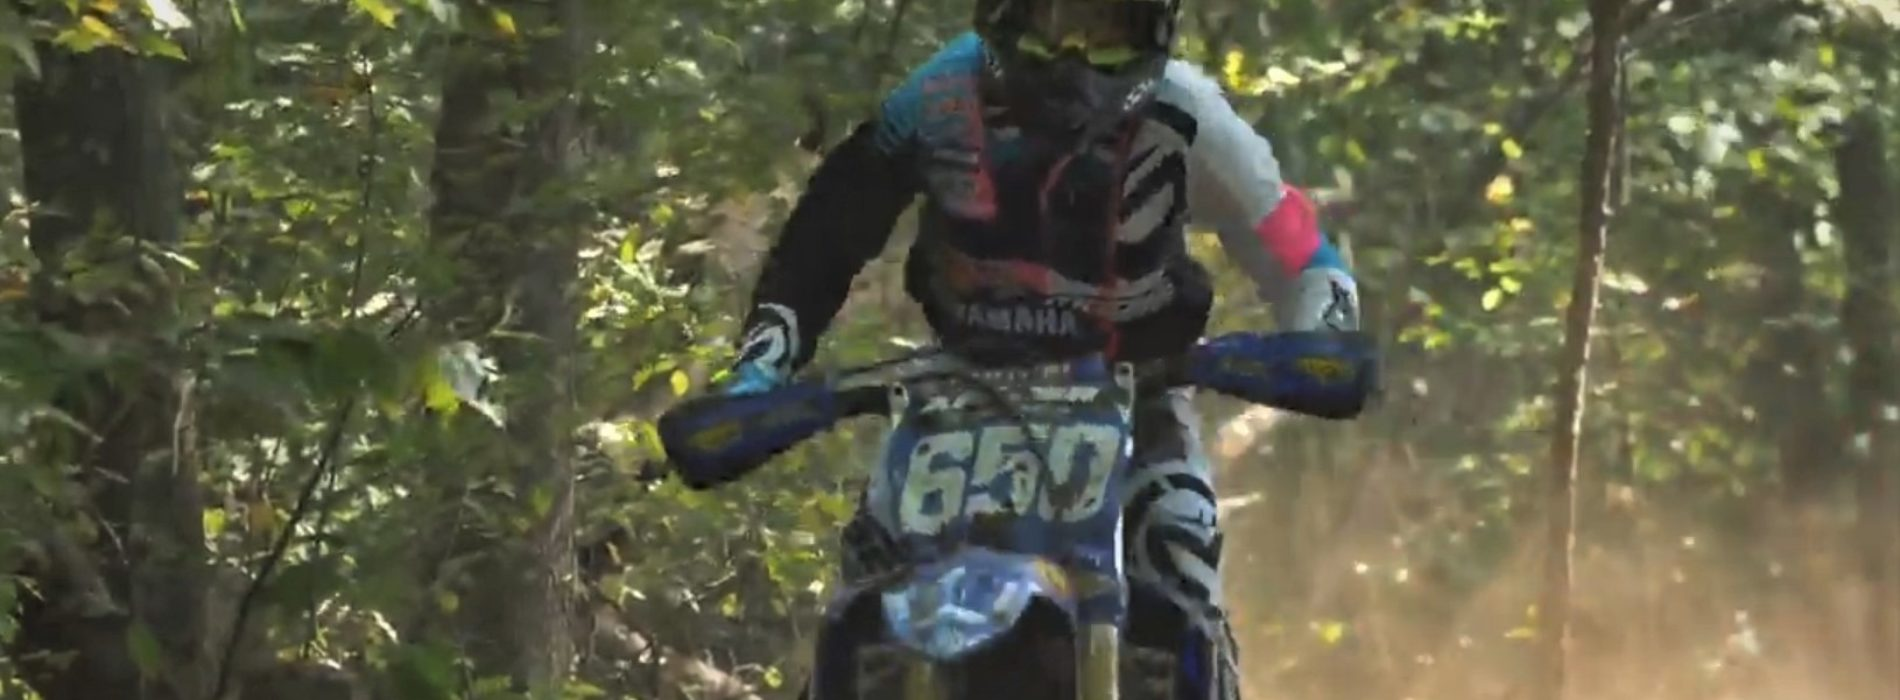 Rachael Archer races GNCC WXC Round 11 on 2020 YZ250F